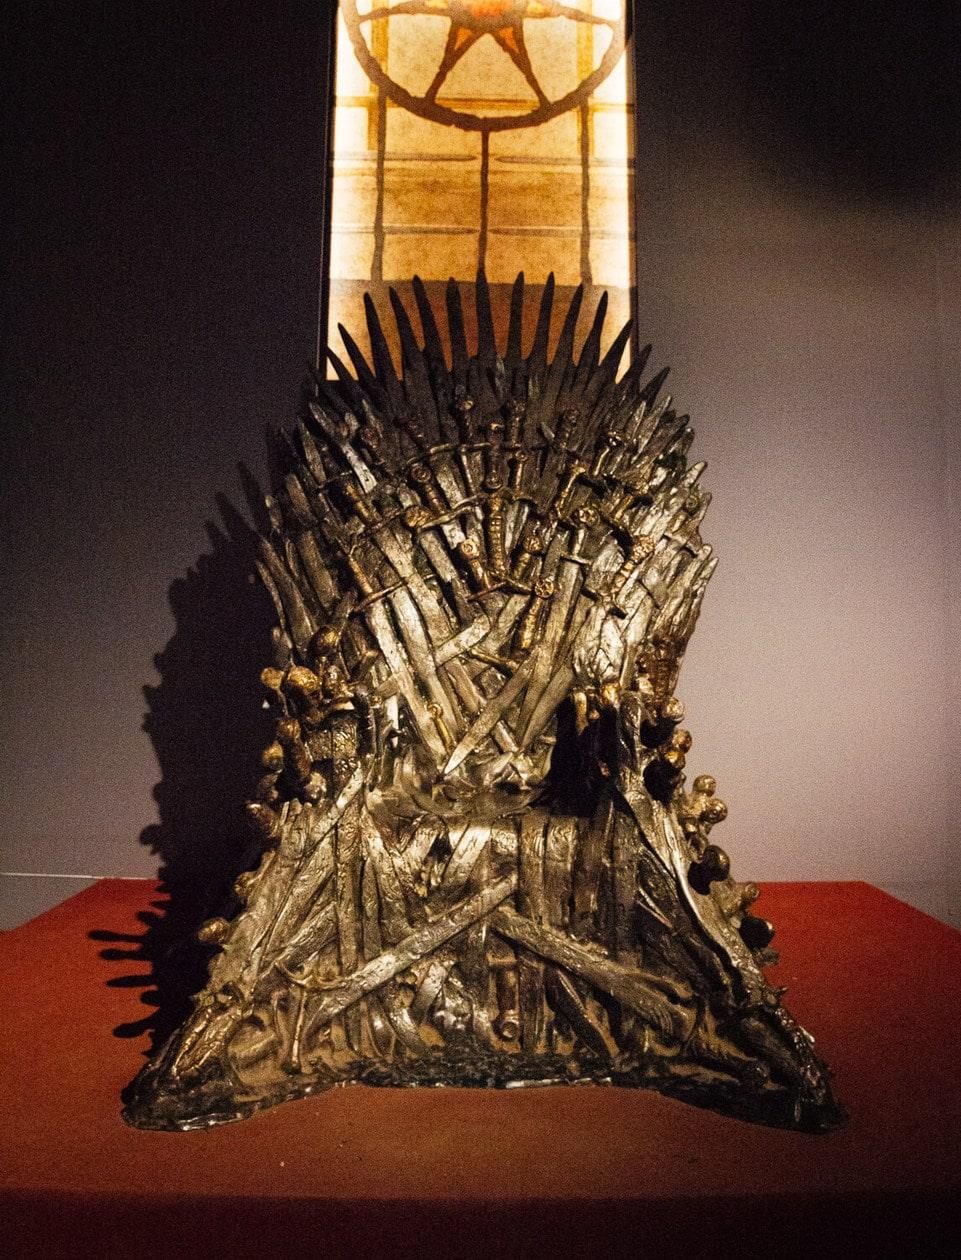 Game of Thrones Iron Throne in Dubrovnik